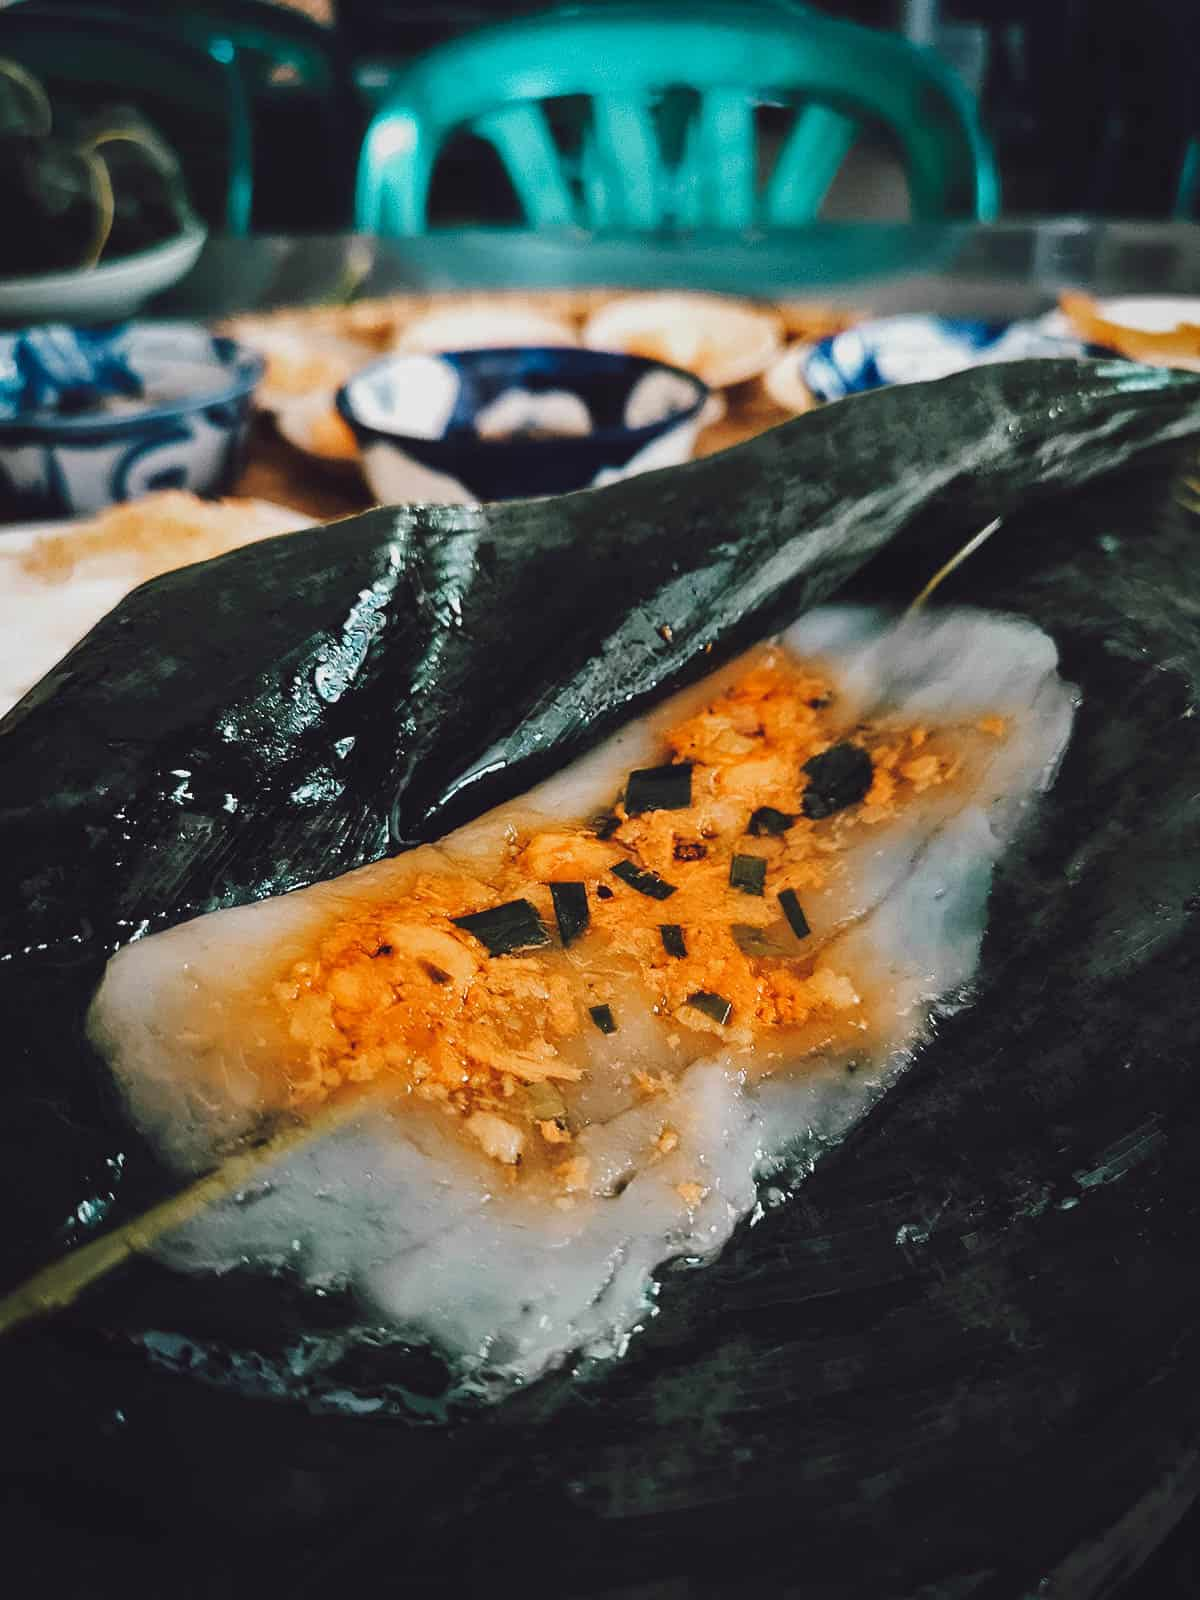 Banh nam at Hang Me Me in Vietnam